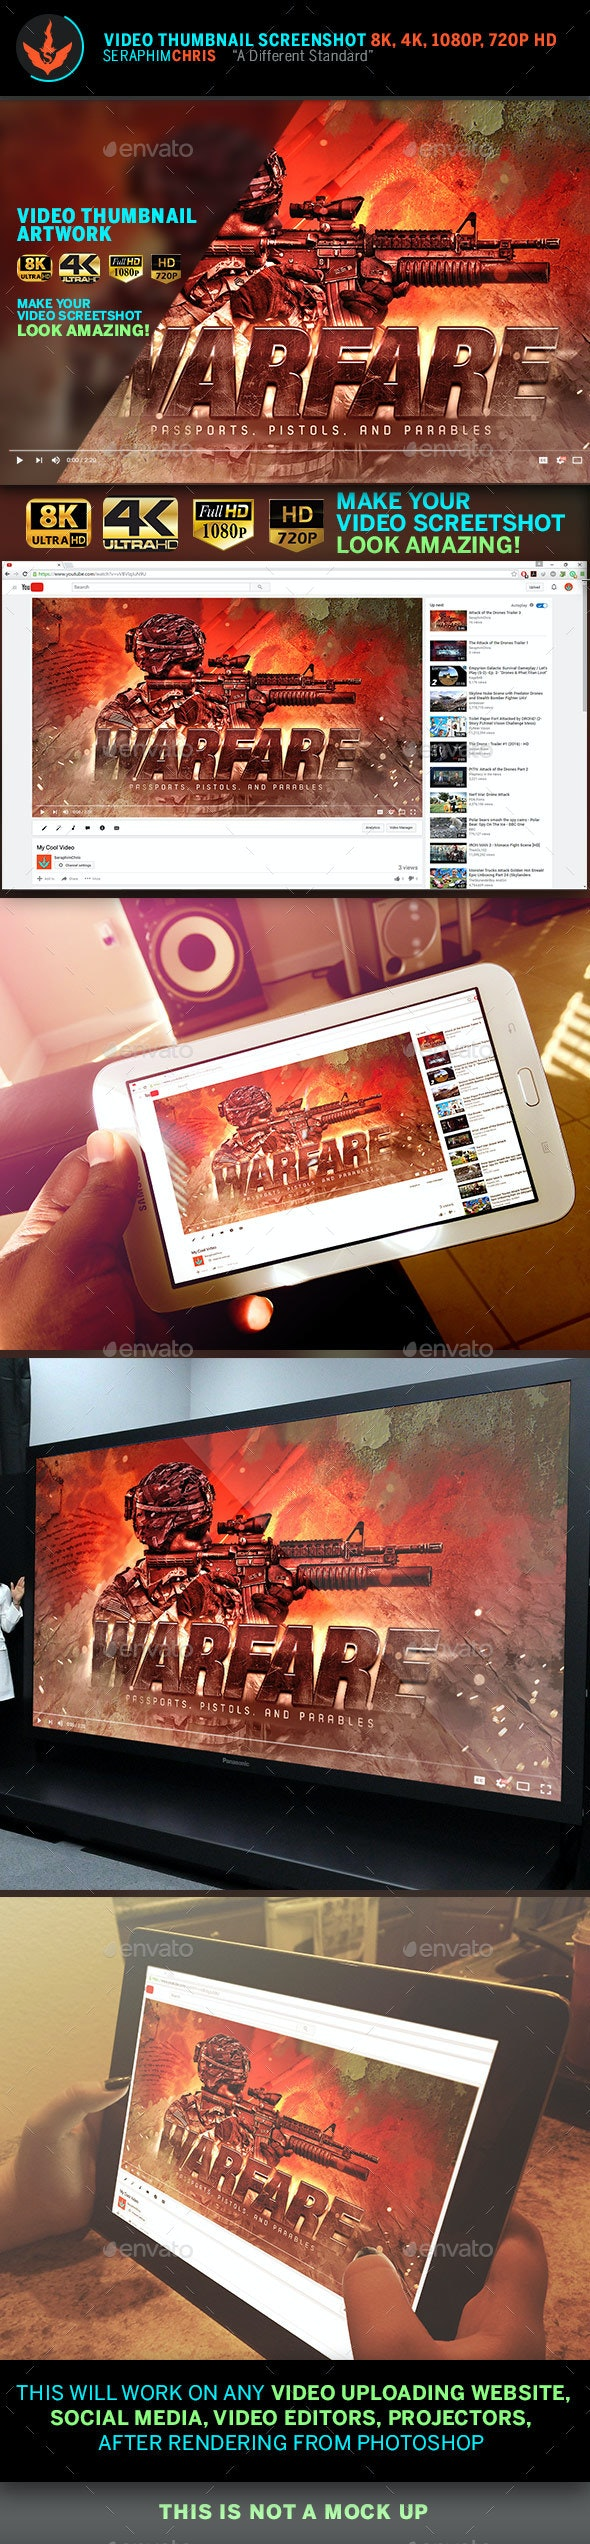 Warfare Youtube Video Thumbnail Screenshot Template - YouTube Social Media